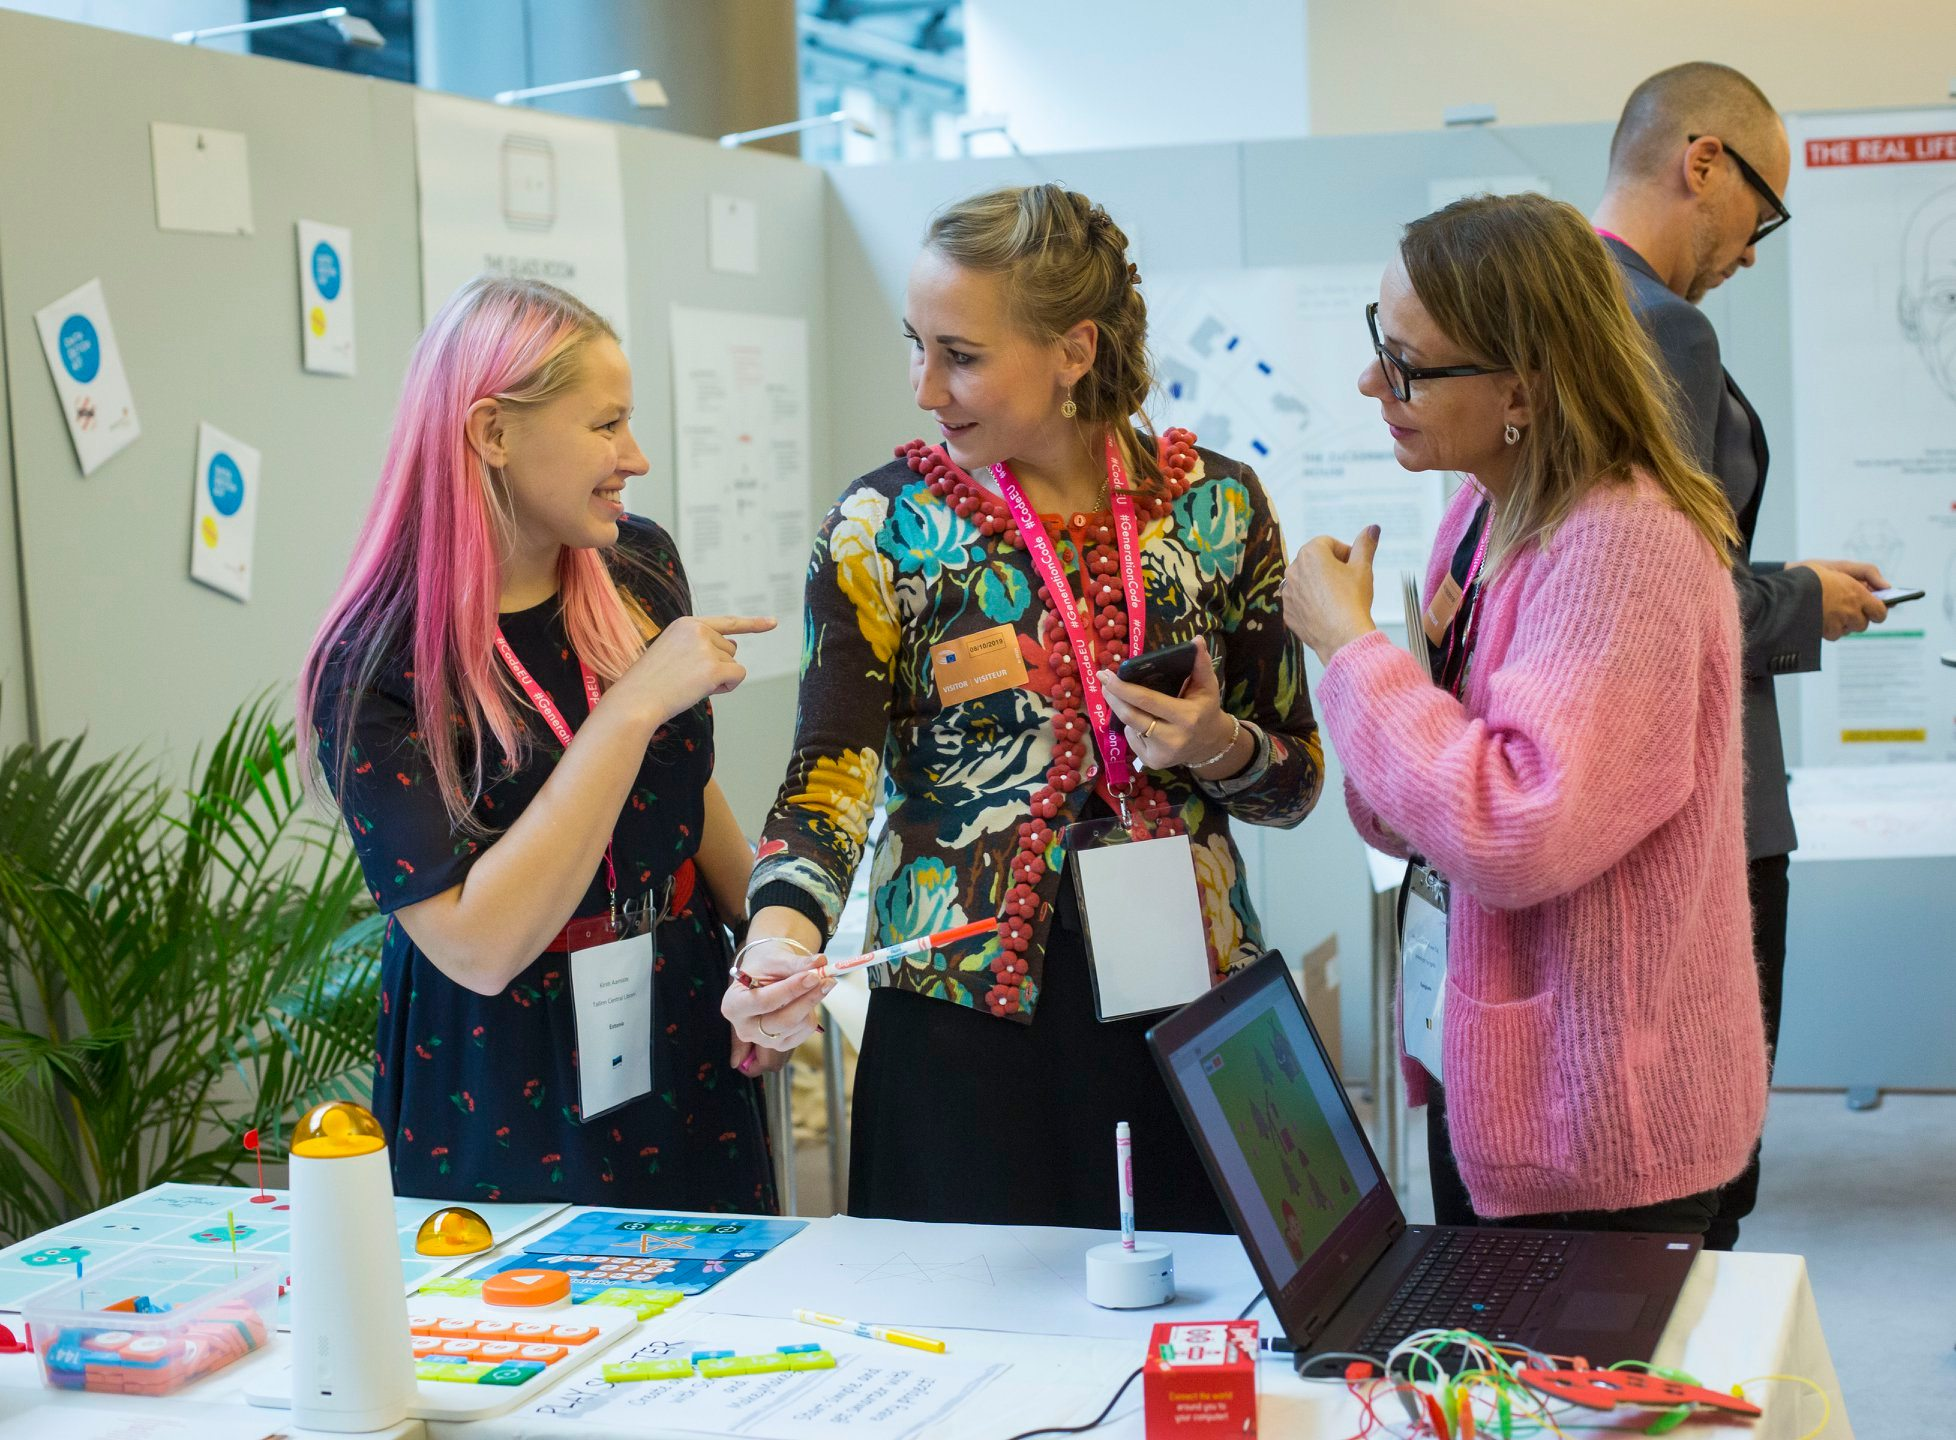 Meet the exhibitors | Generation Code 2020